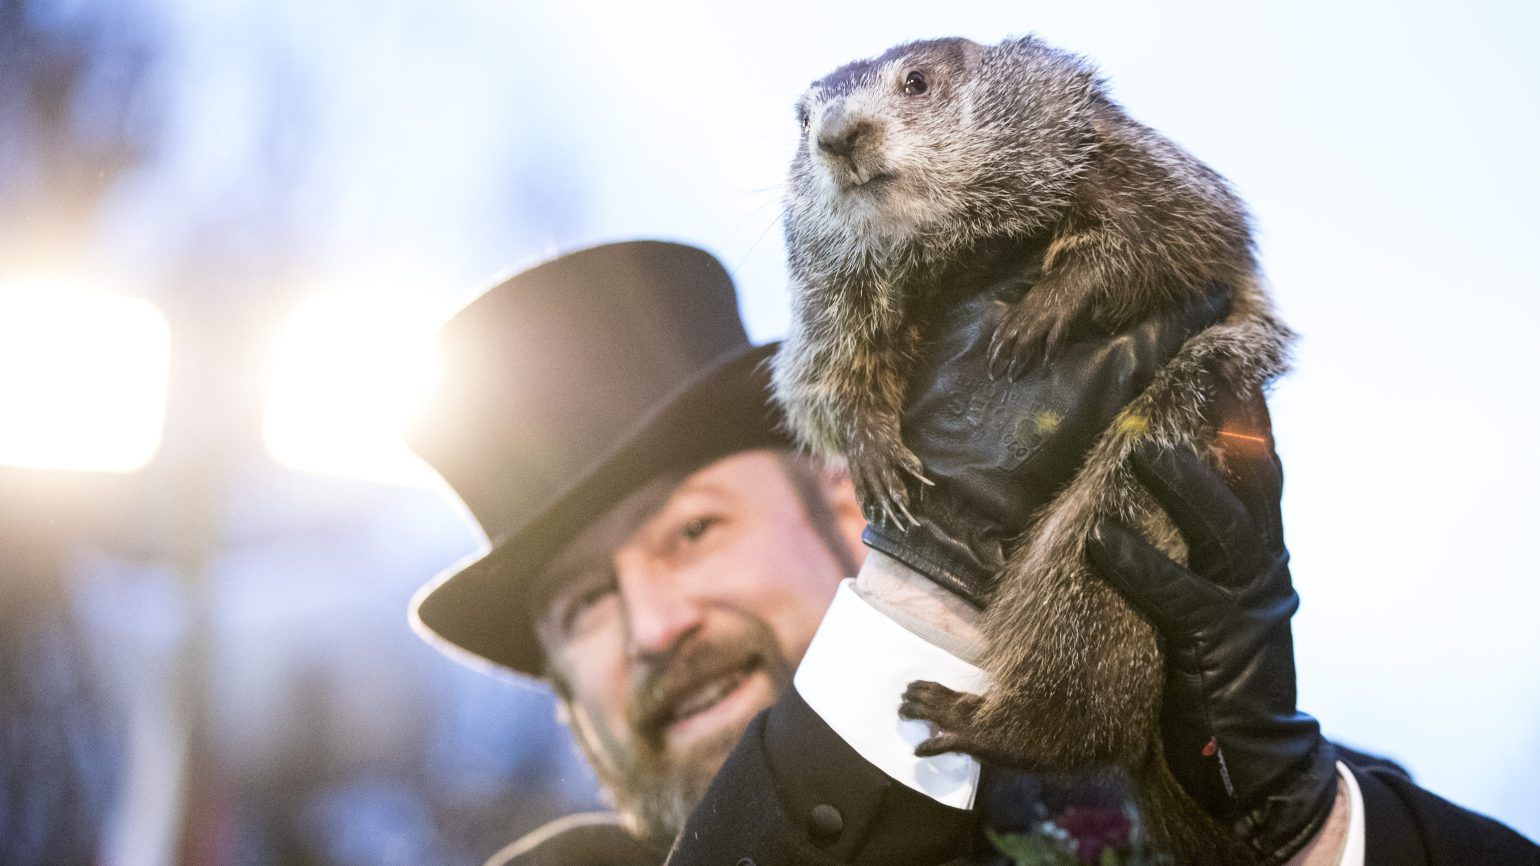 Groundhog Day Punxsutawney Phil Predicts Spring Will Come